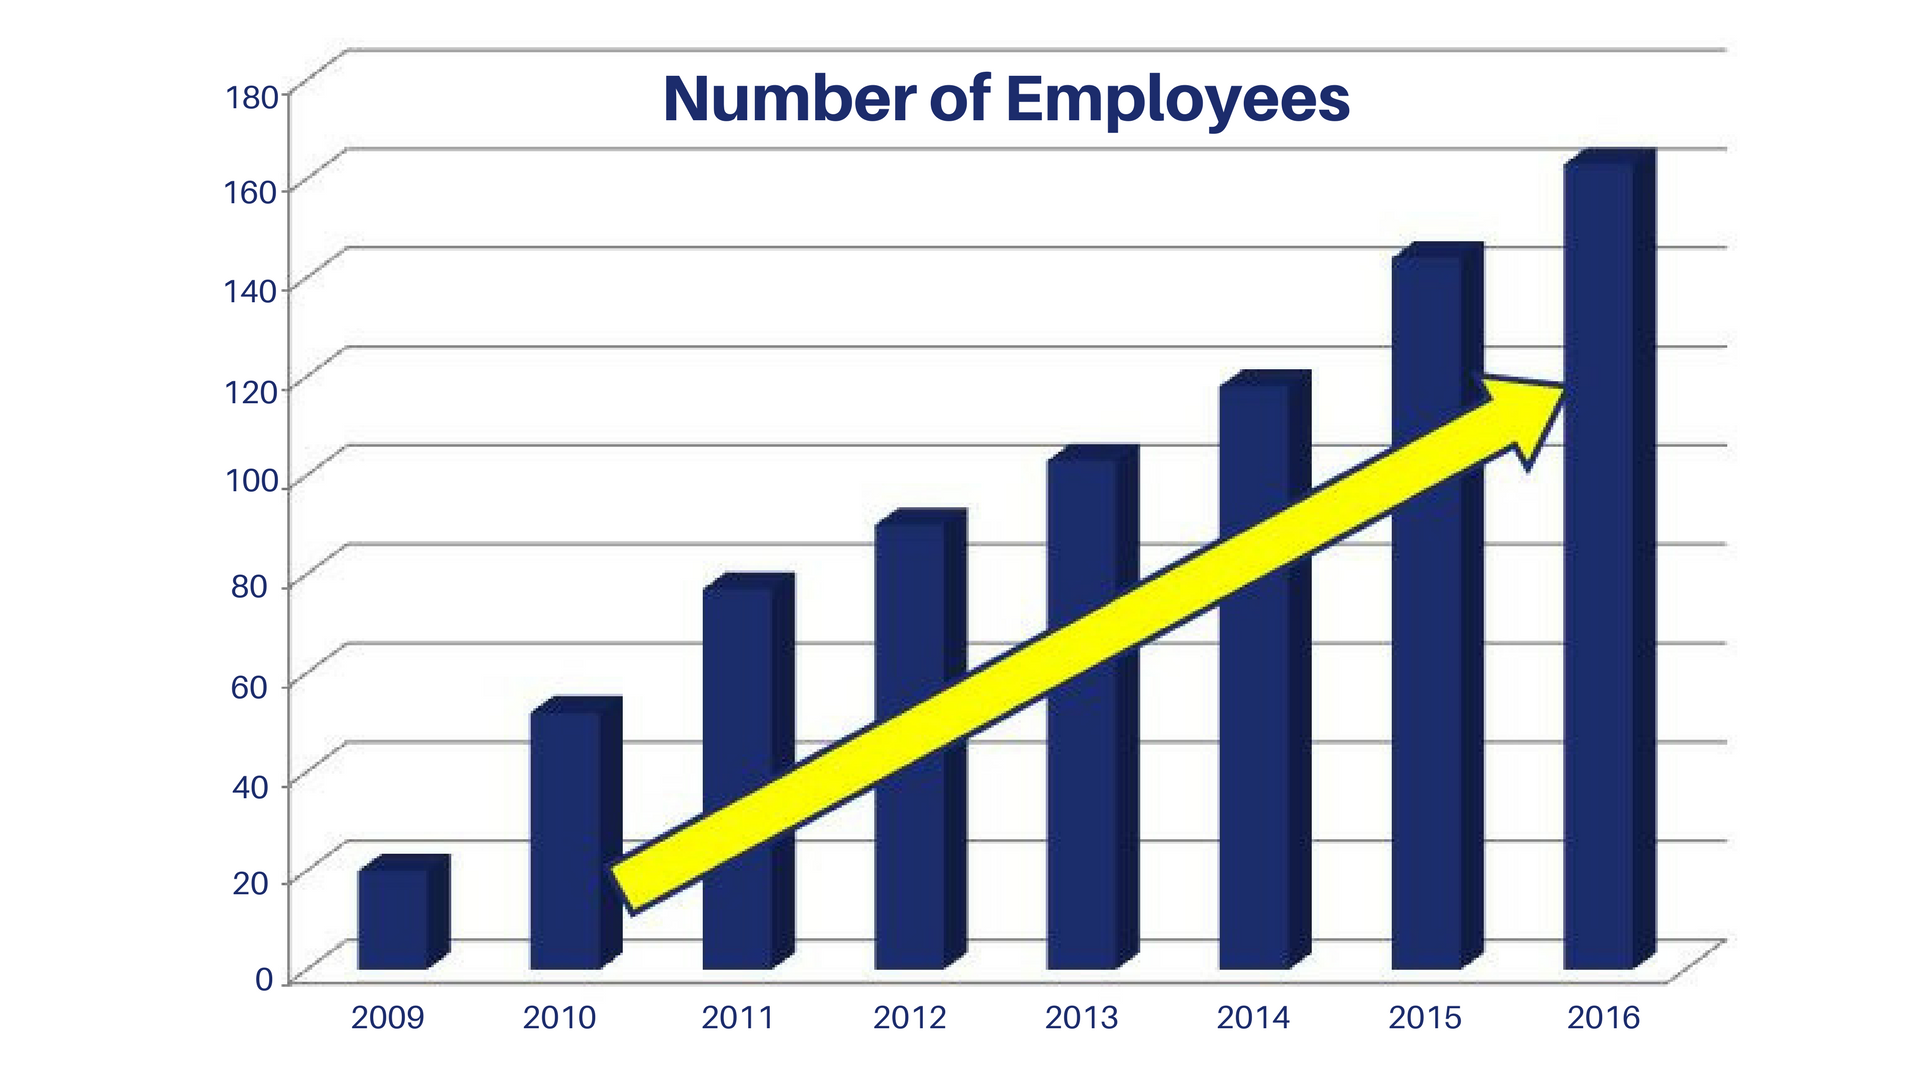 A line graph depicting the number of employees at MegaCorp. The bars increase by about 20 units each year, starting at just under 20 in 2009 and ending at 160 in 2016.